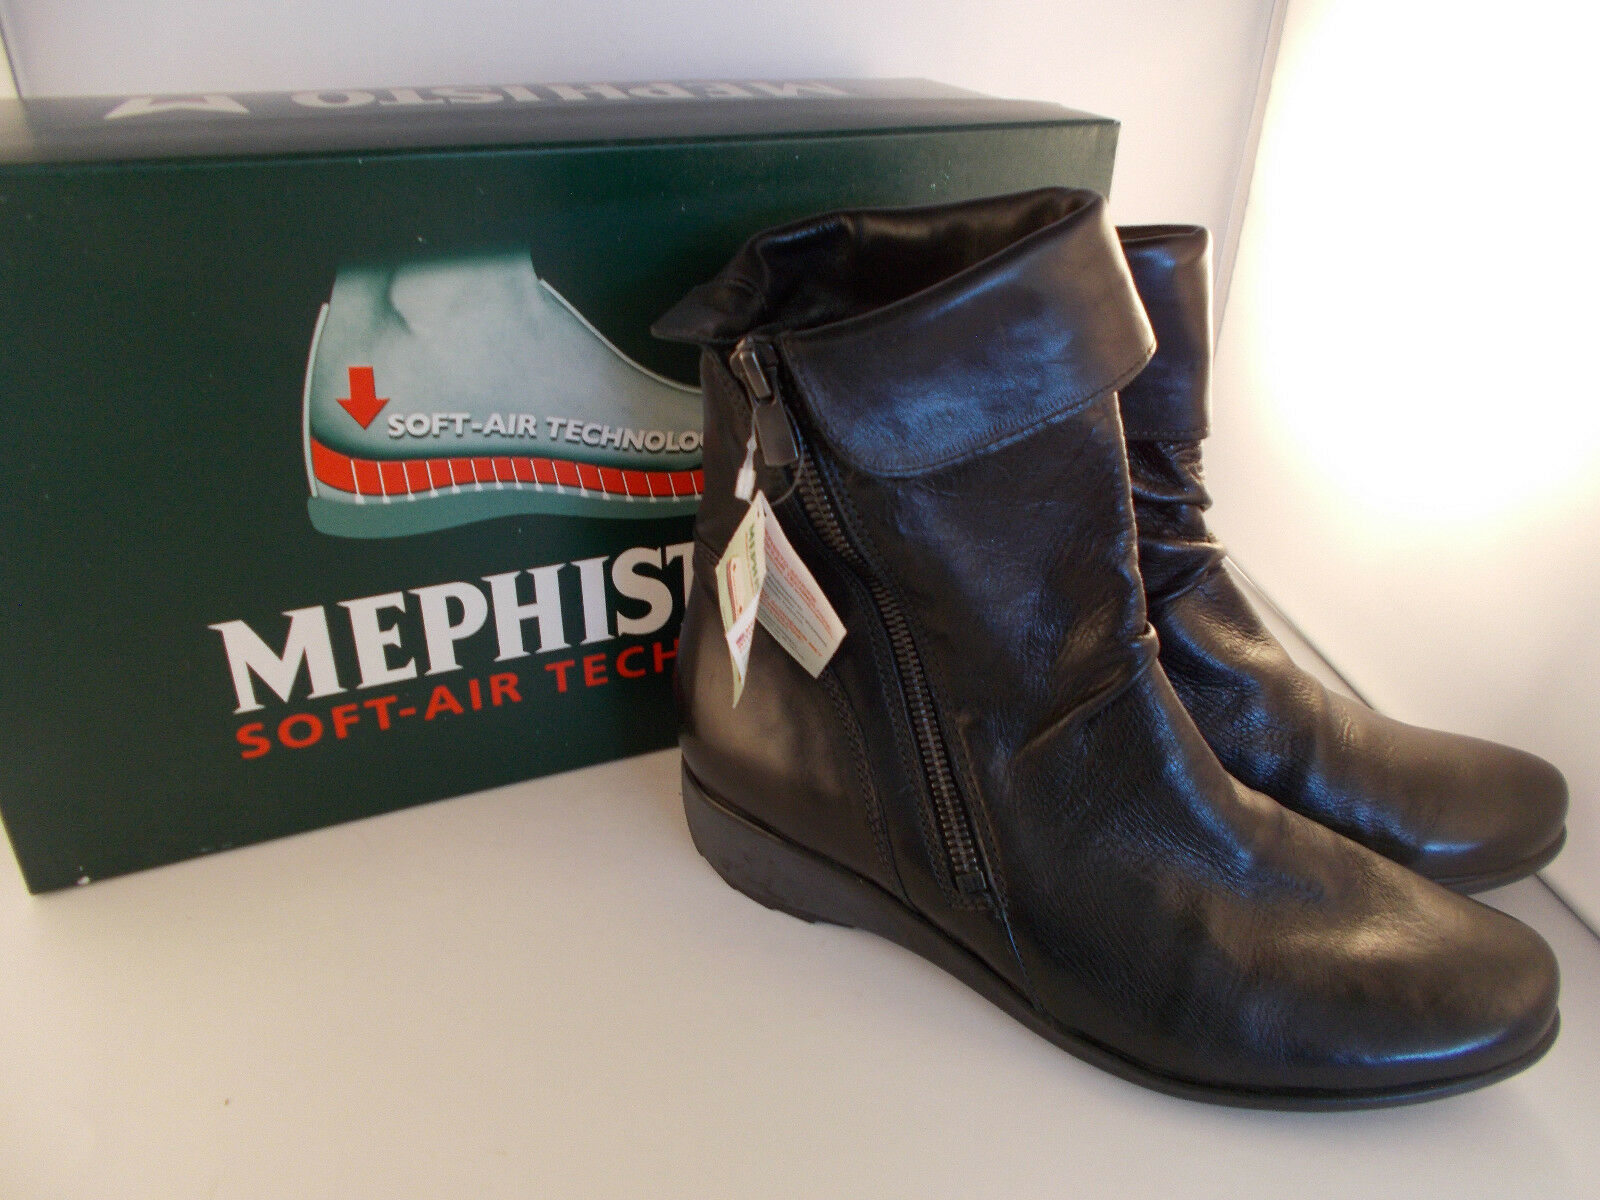 Mephisto Seddy Black Texas Handmade Soft-Air Women's Boots Size 6 US New In Box